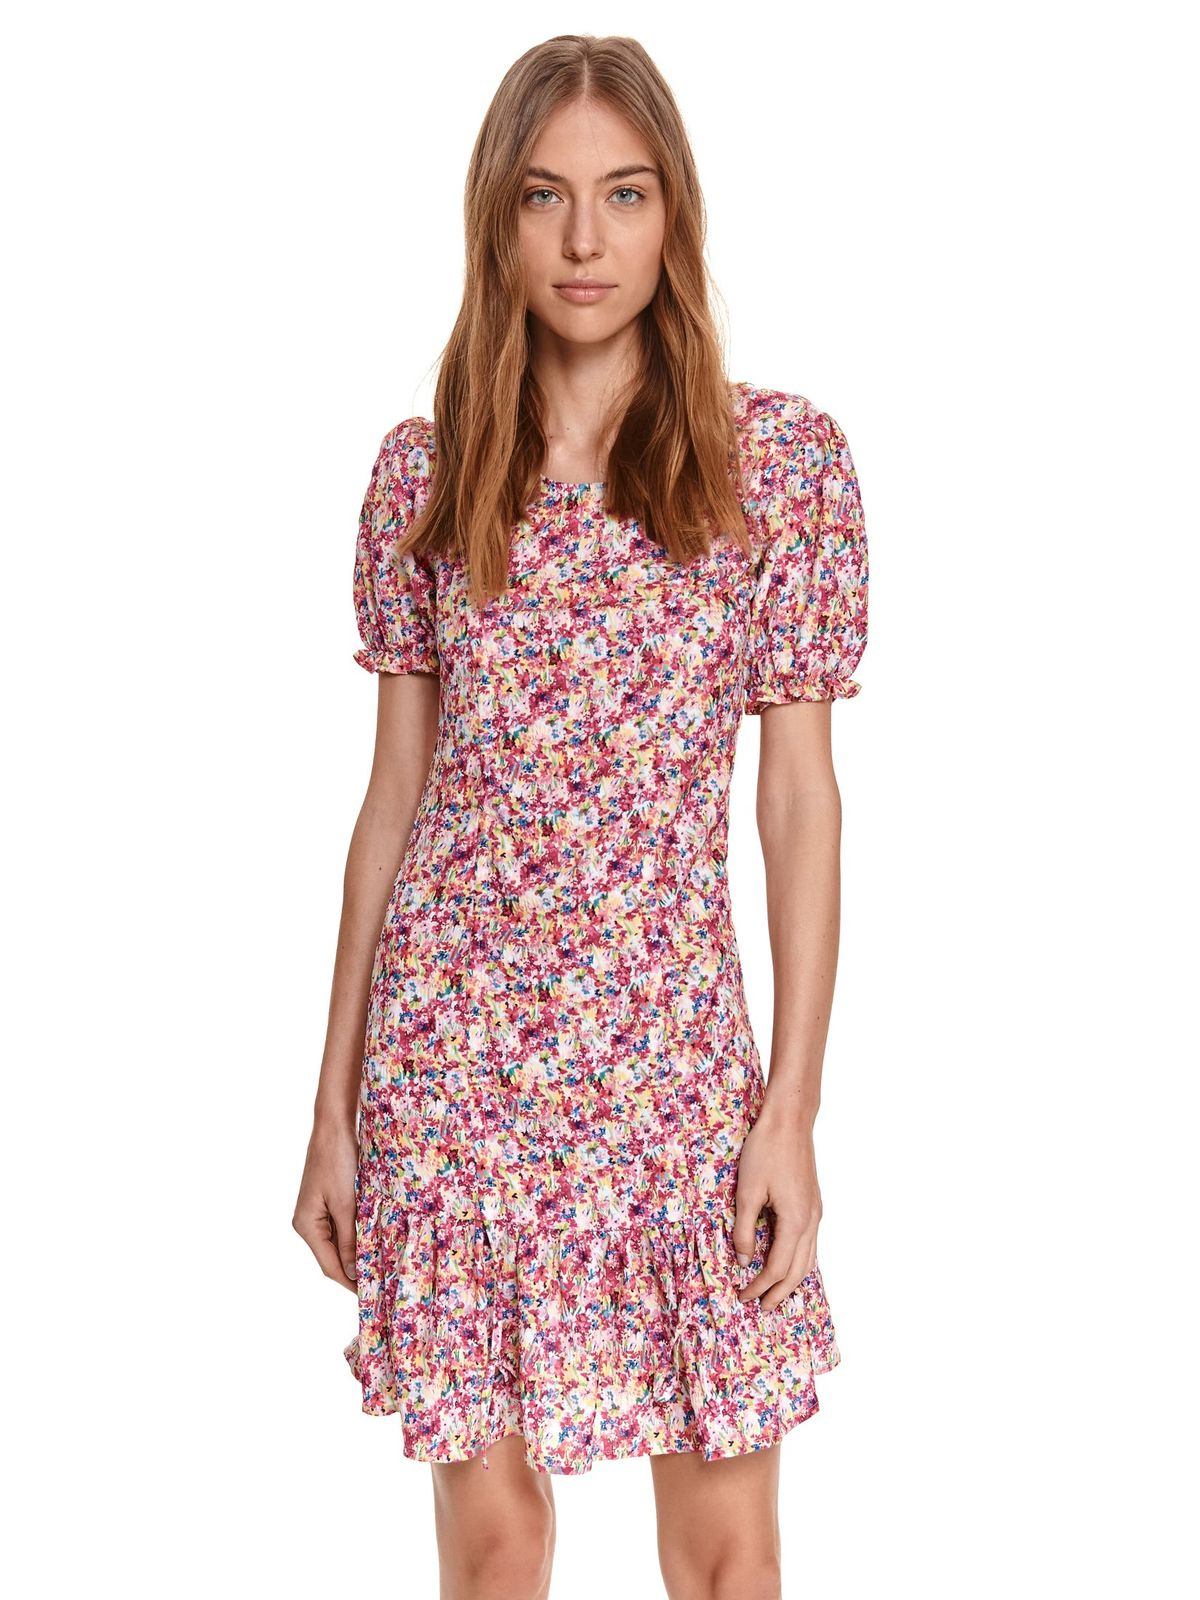 Pink dress with floral print with ruffles at the buttom of the dress with ruffled sleeves cloche